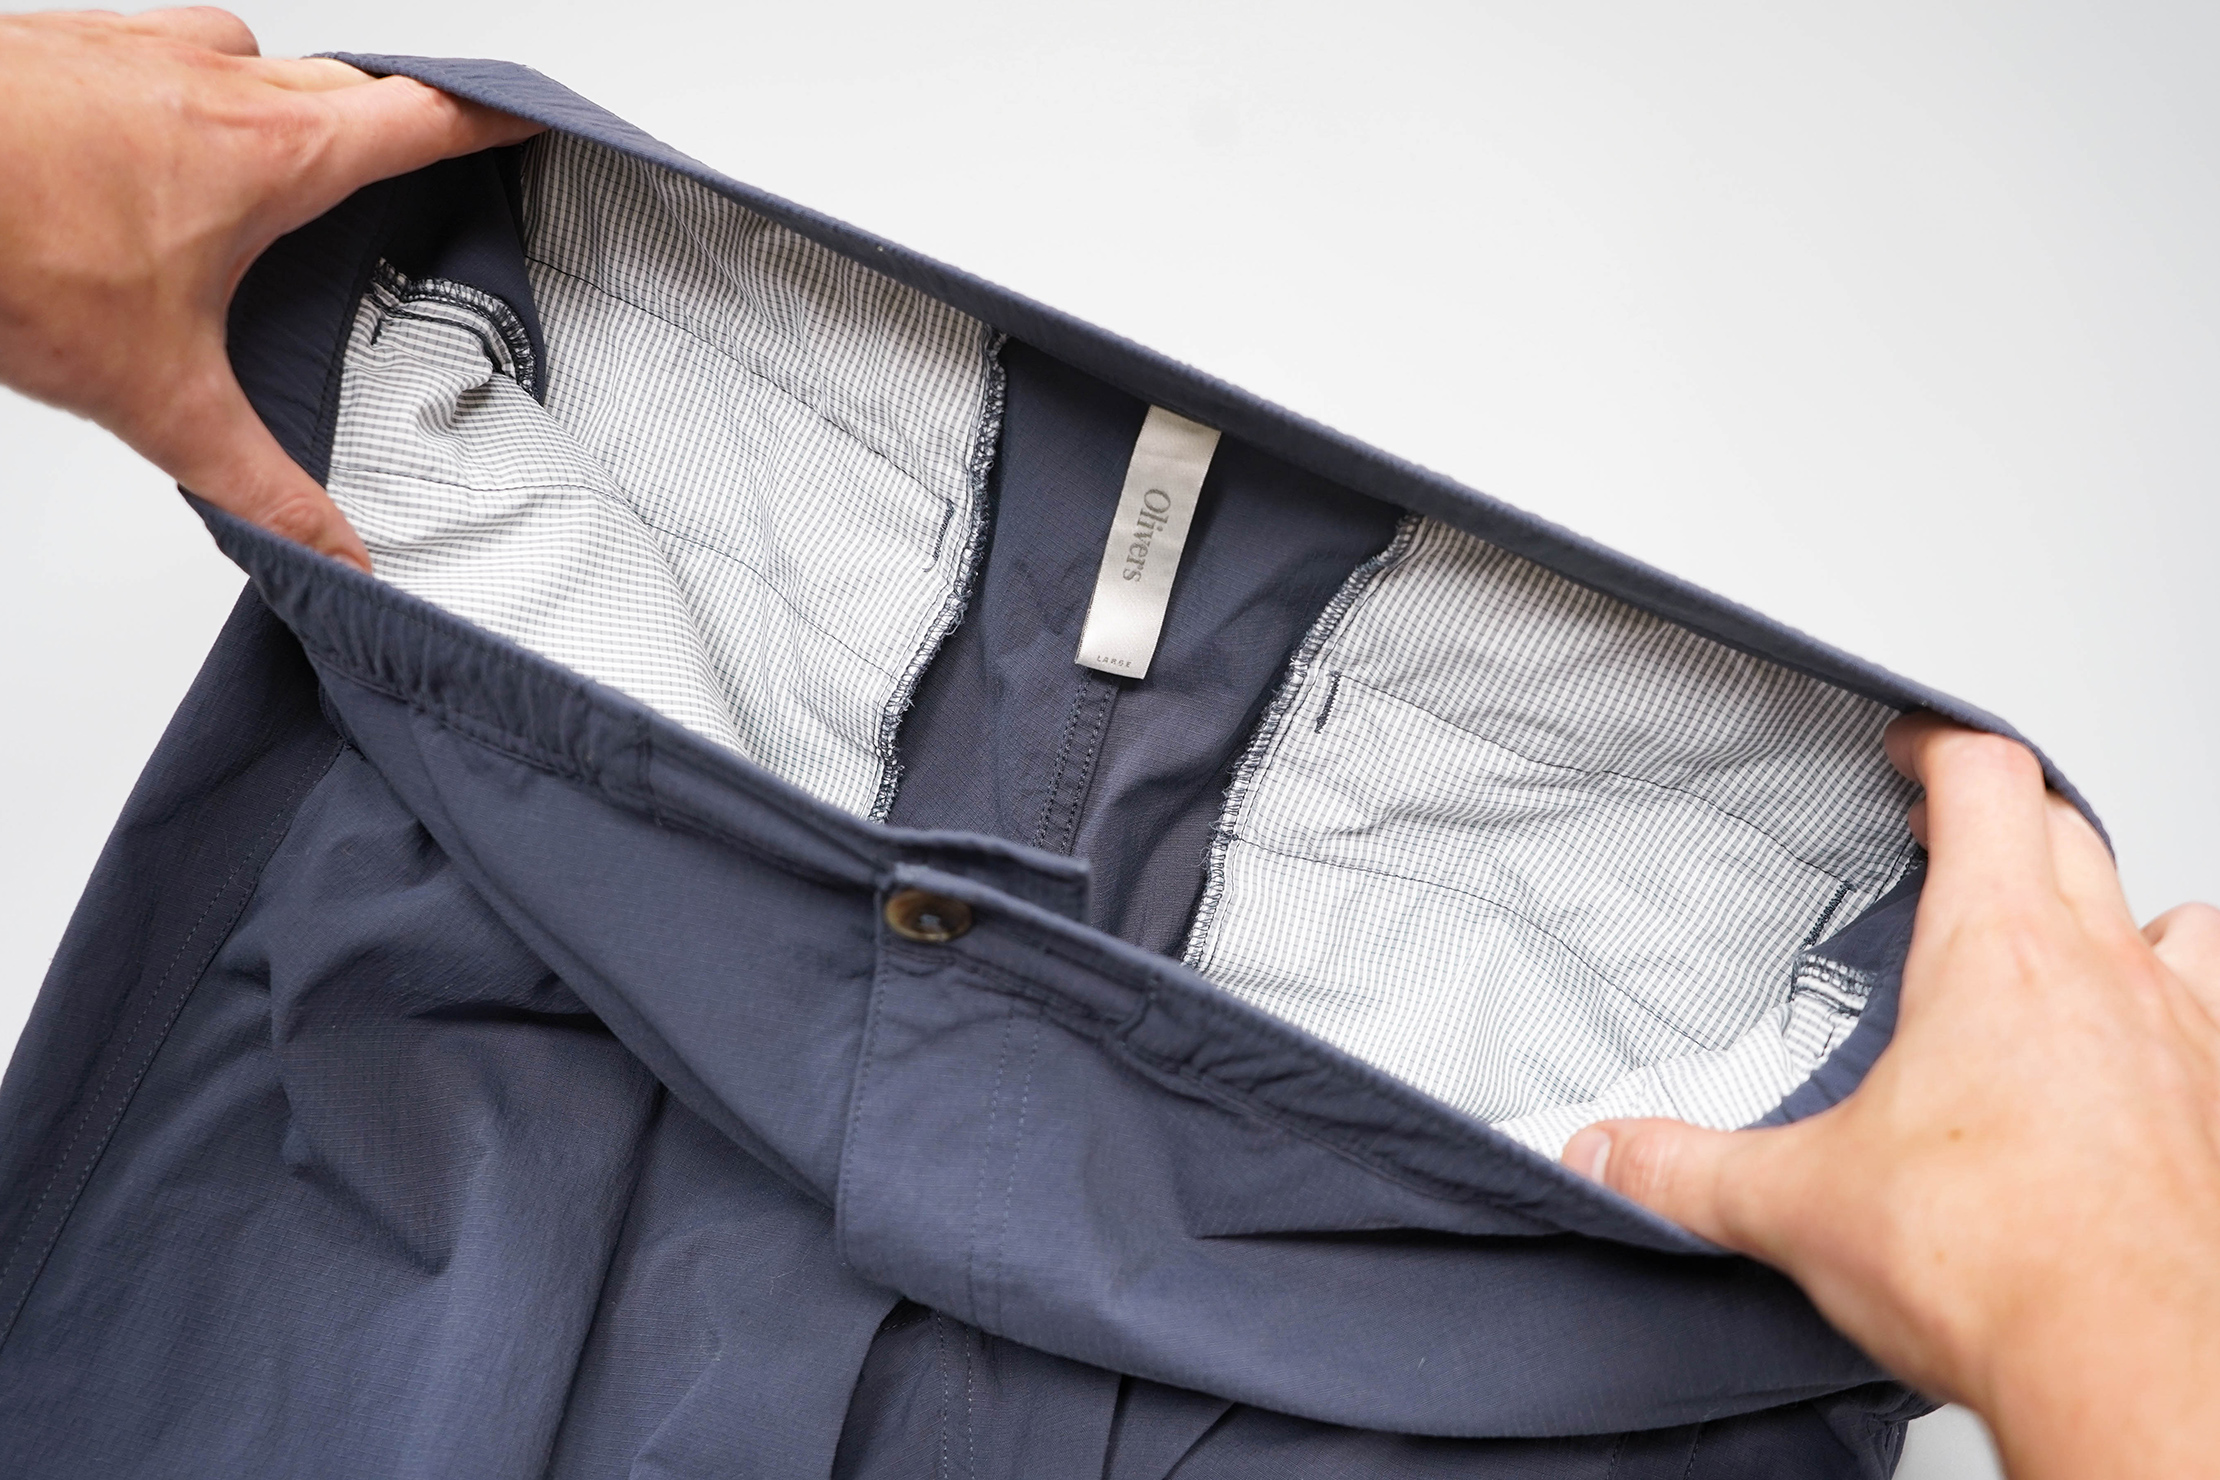 Olivers Compass Pant Waistband